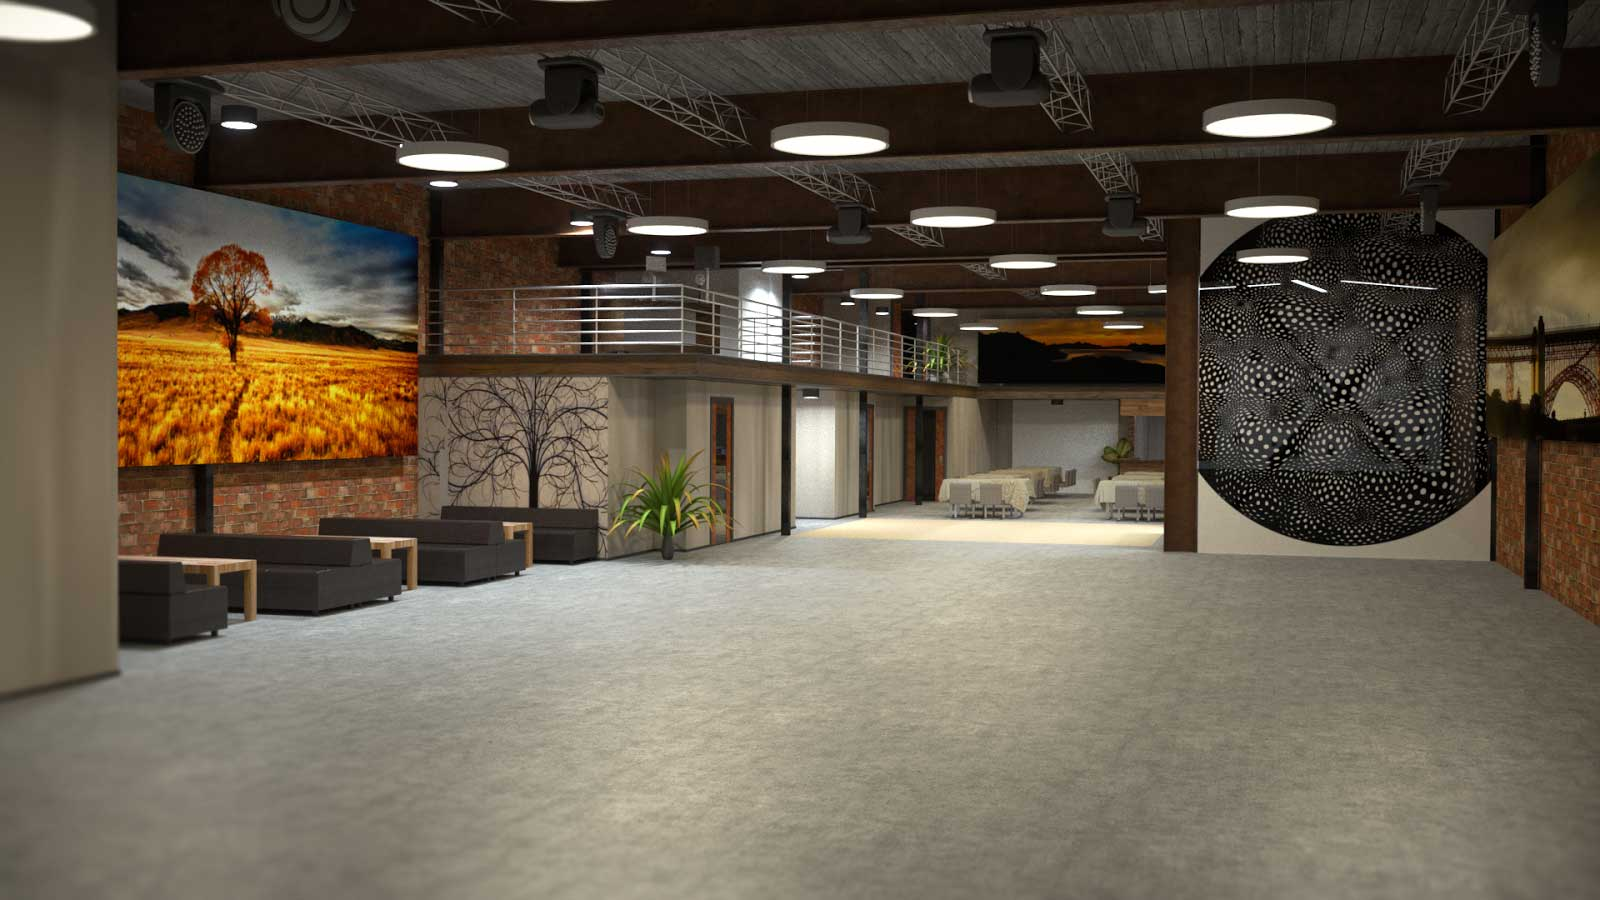 969 Market Is A 17,000 Sf Event Venue With Over 1300 Person Capacity Spread  Over 3 Floors We Offer Leading Edge Embedded Event Solutions For Immersive